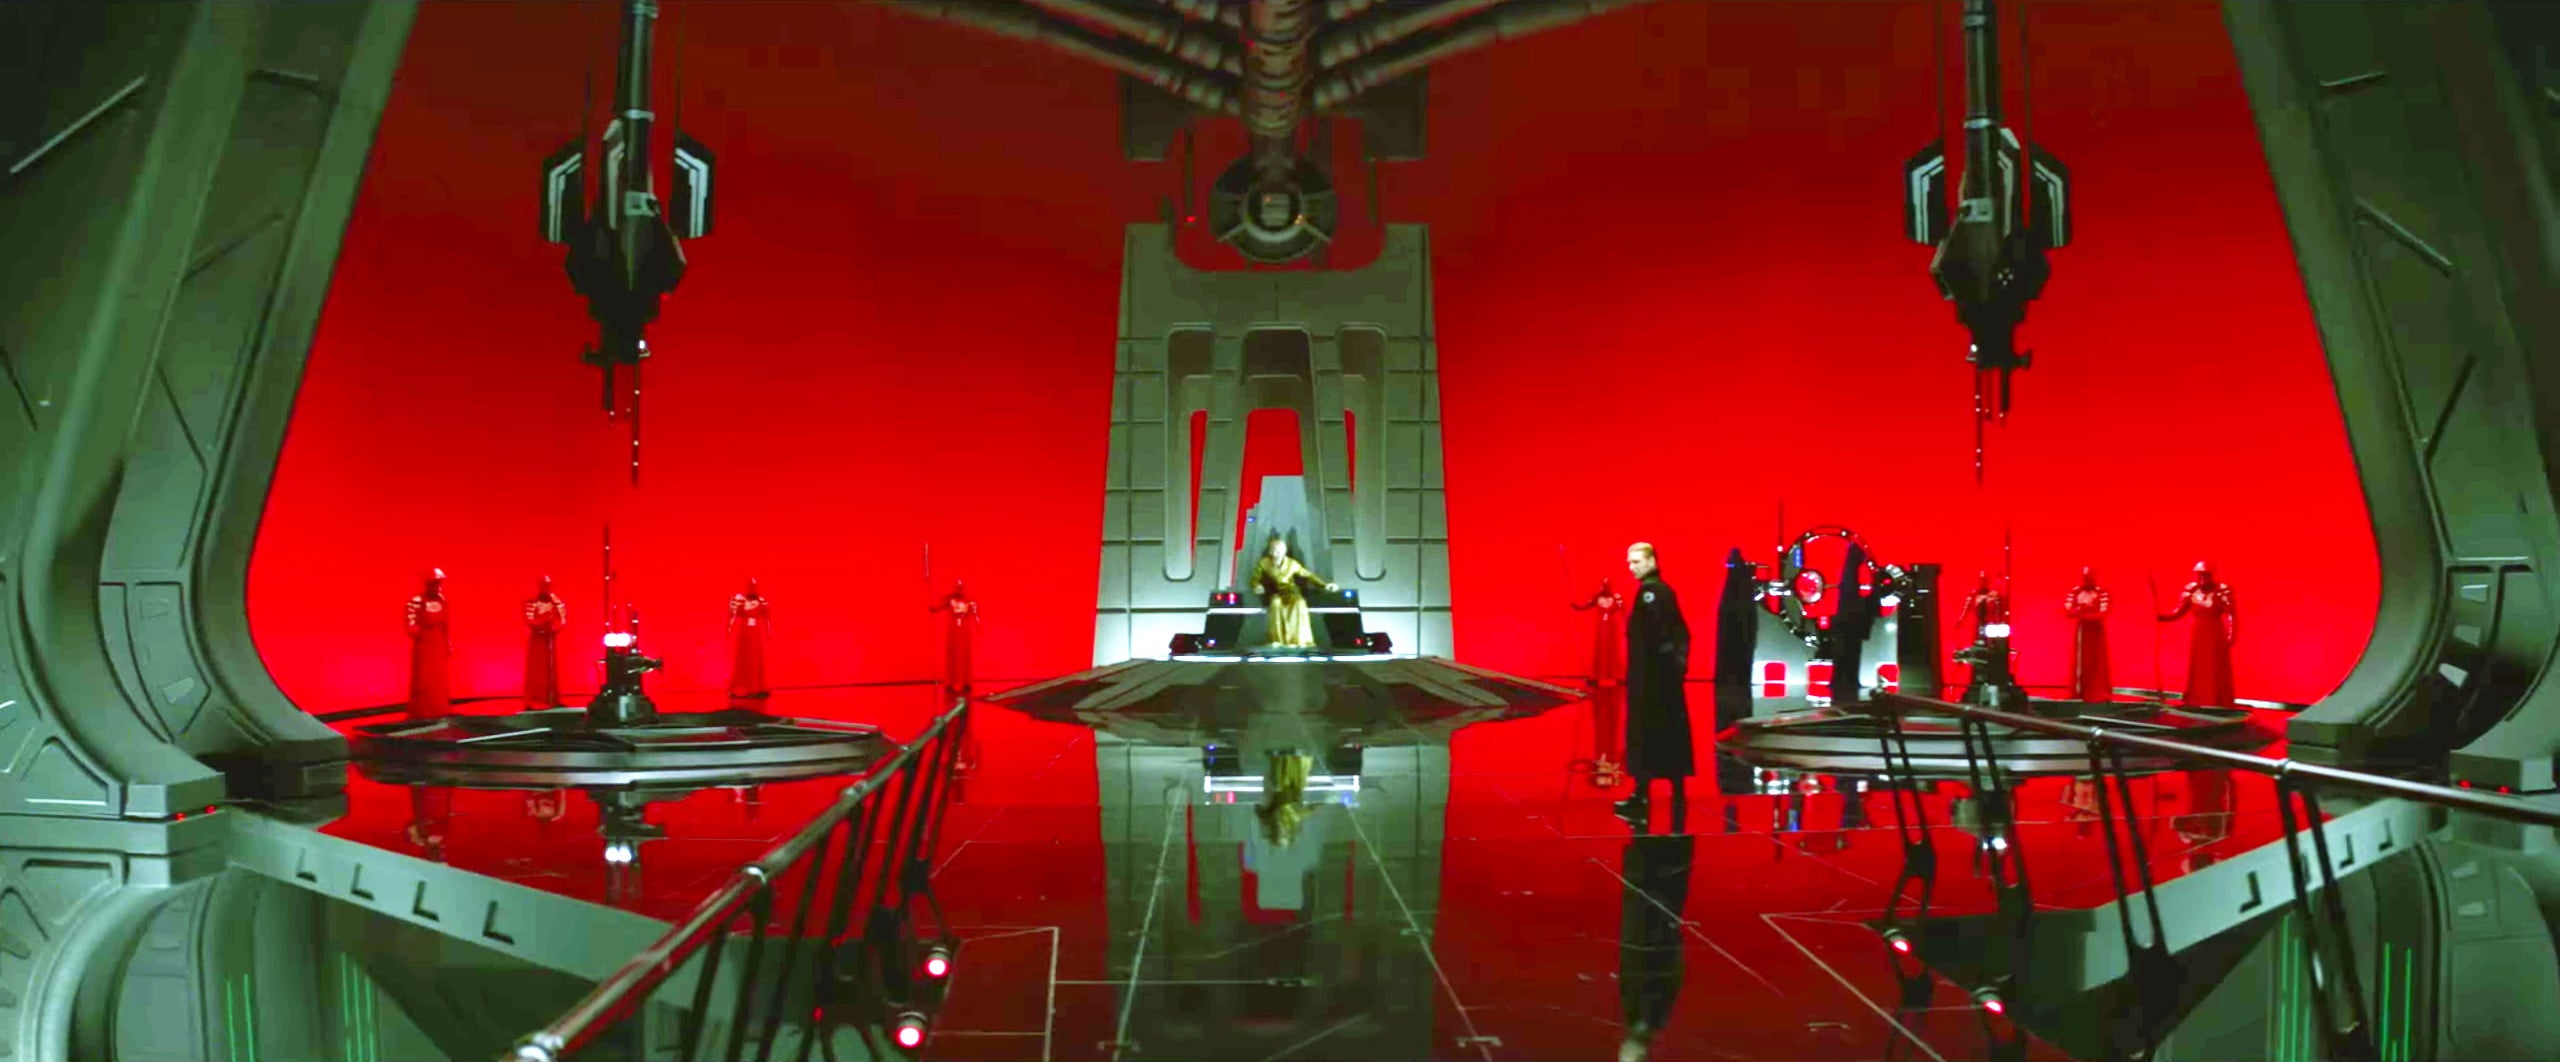 star-wars-the-last-jedi-snoke-throne-roo